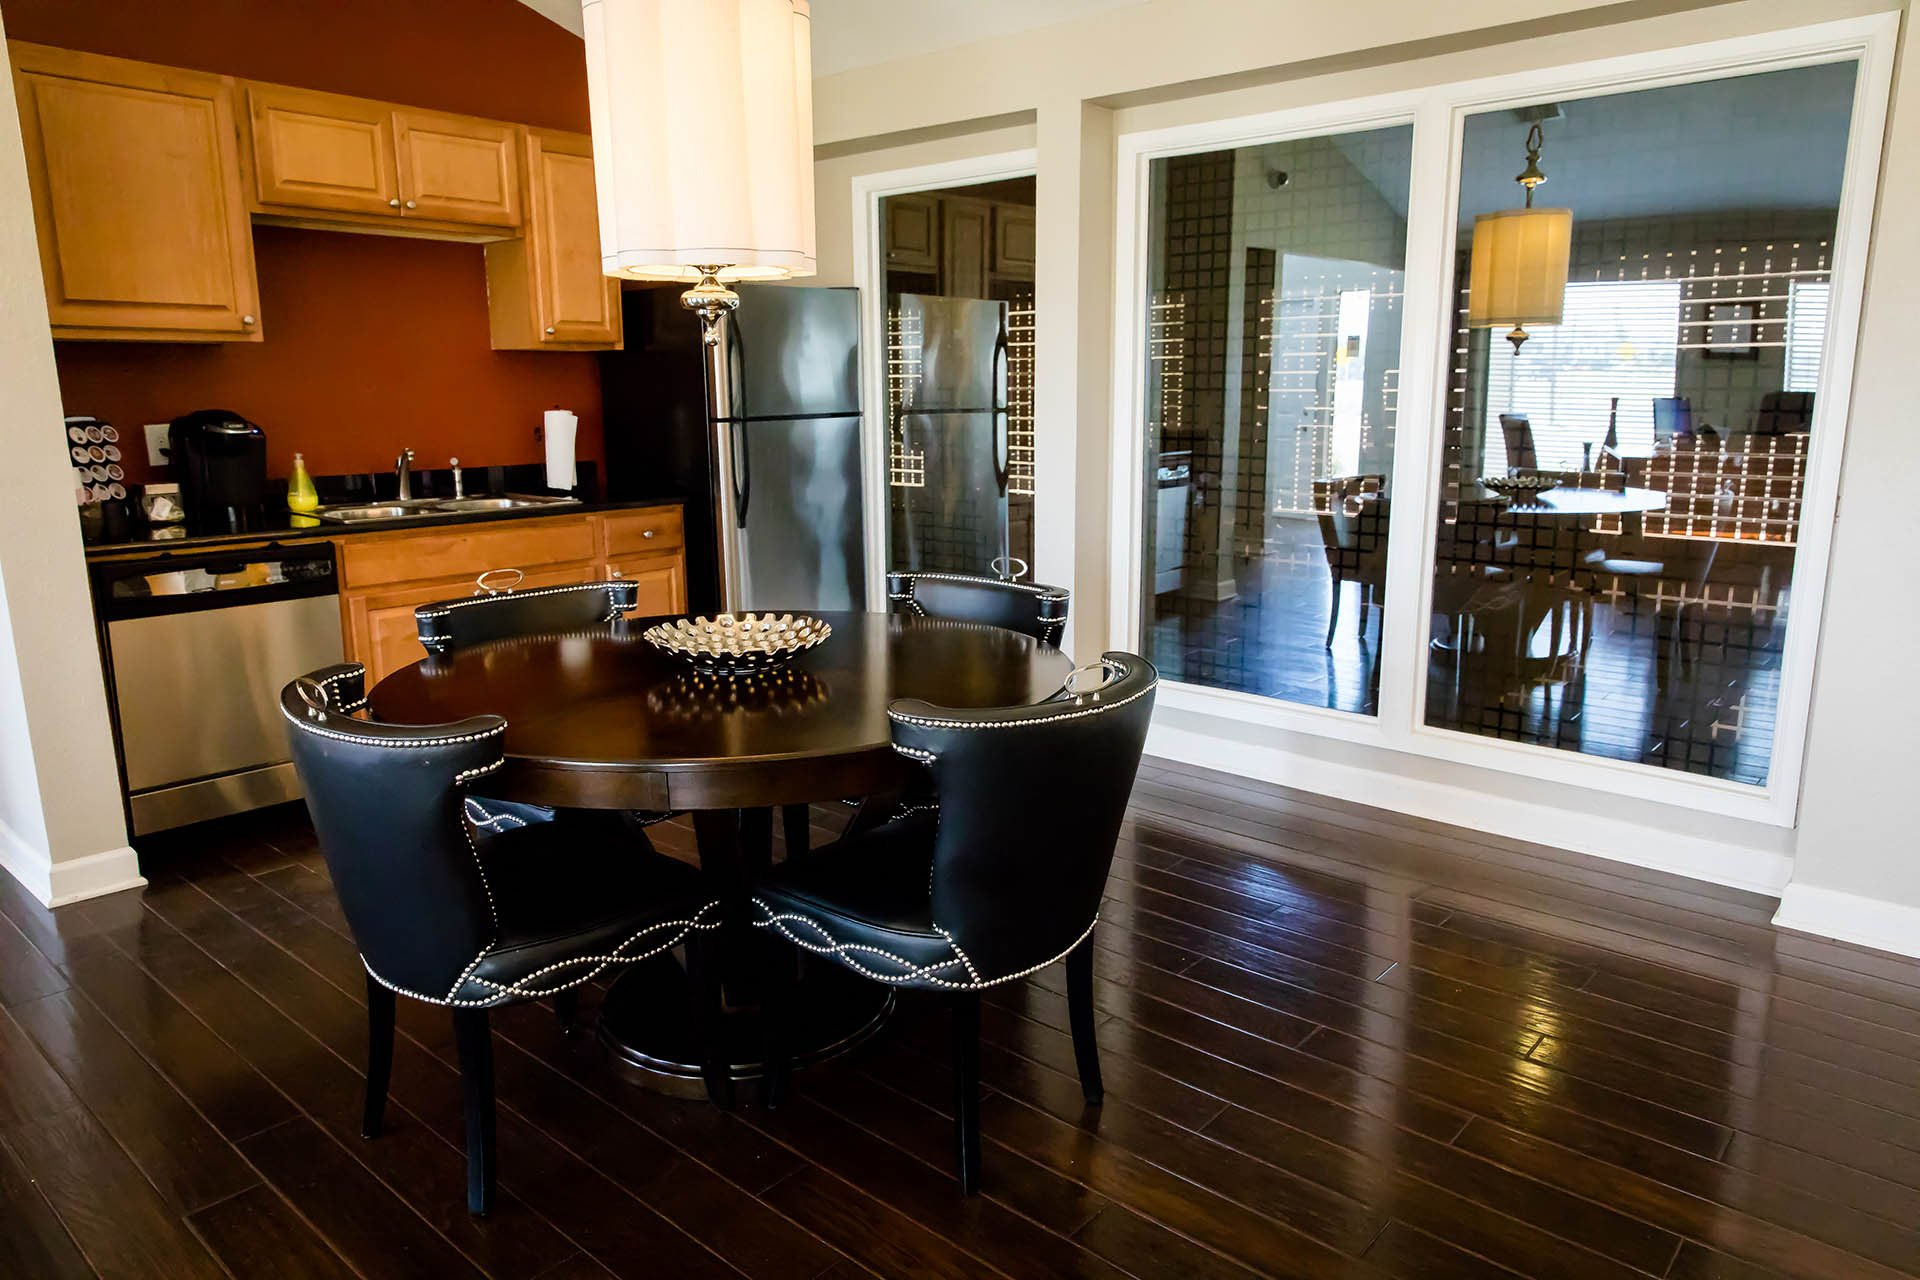 Stainless Steel Appliances at Hawthorne House, Midland, TX